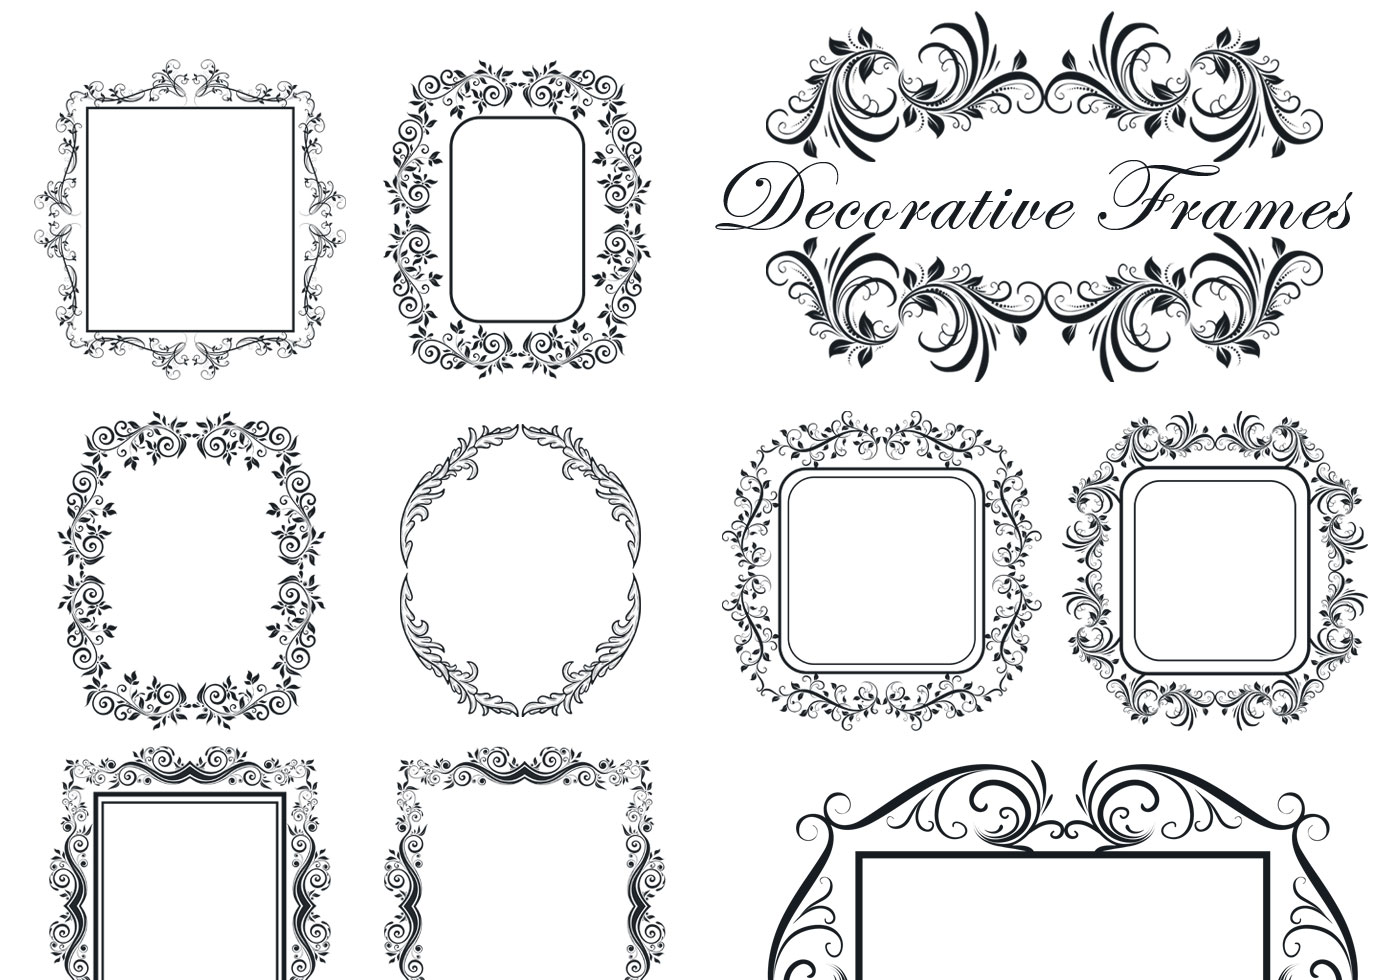 decorative frame brushes free photoshop brushes at brusheezy